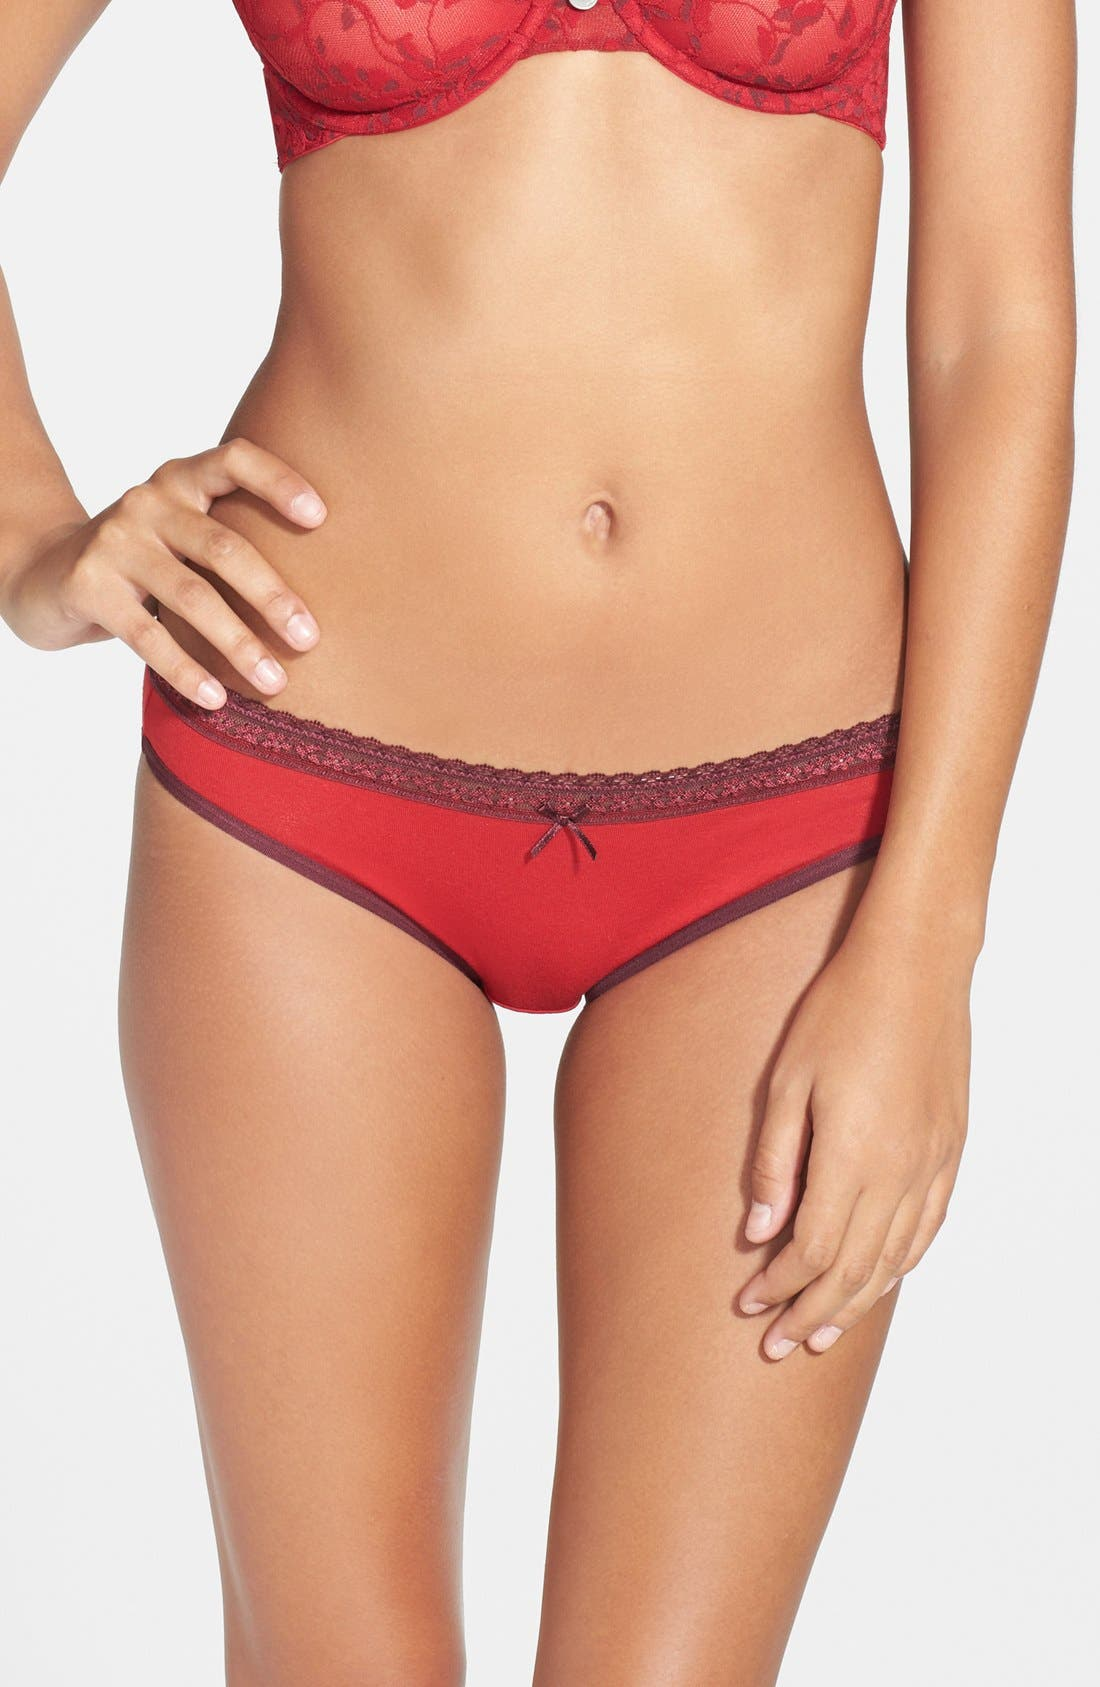 Alternate Image 1 Selected - DKNY 'Delicate Essentials' Bikini (3 for $30)